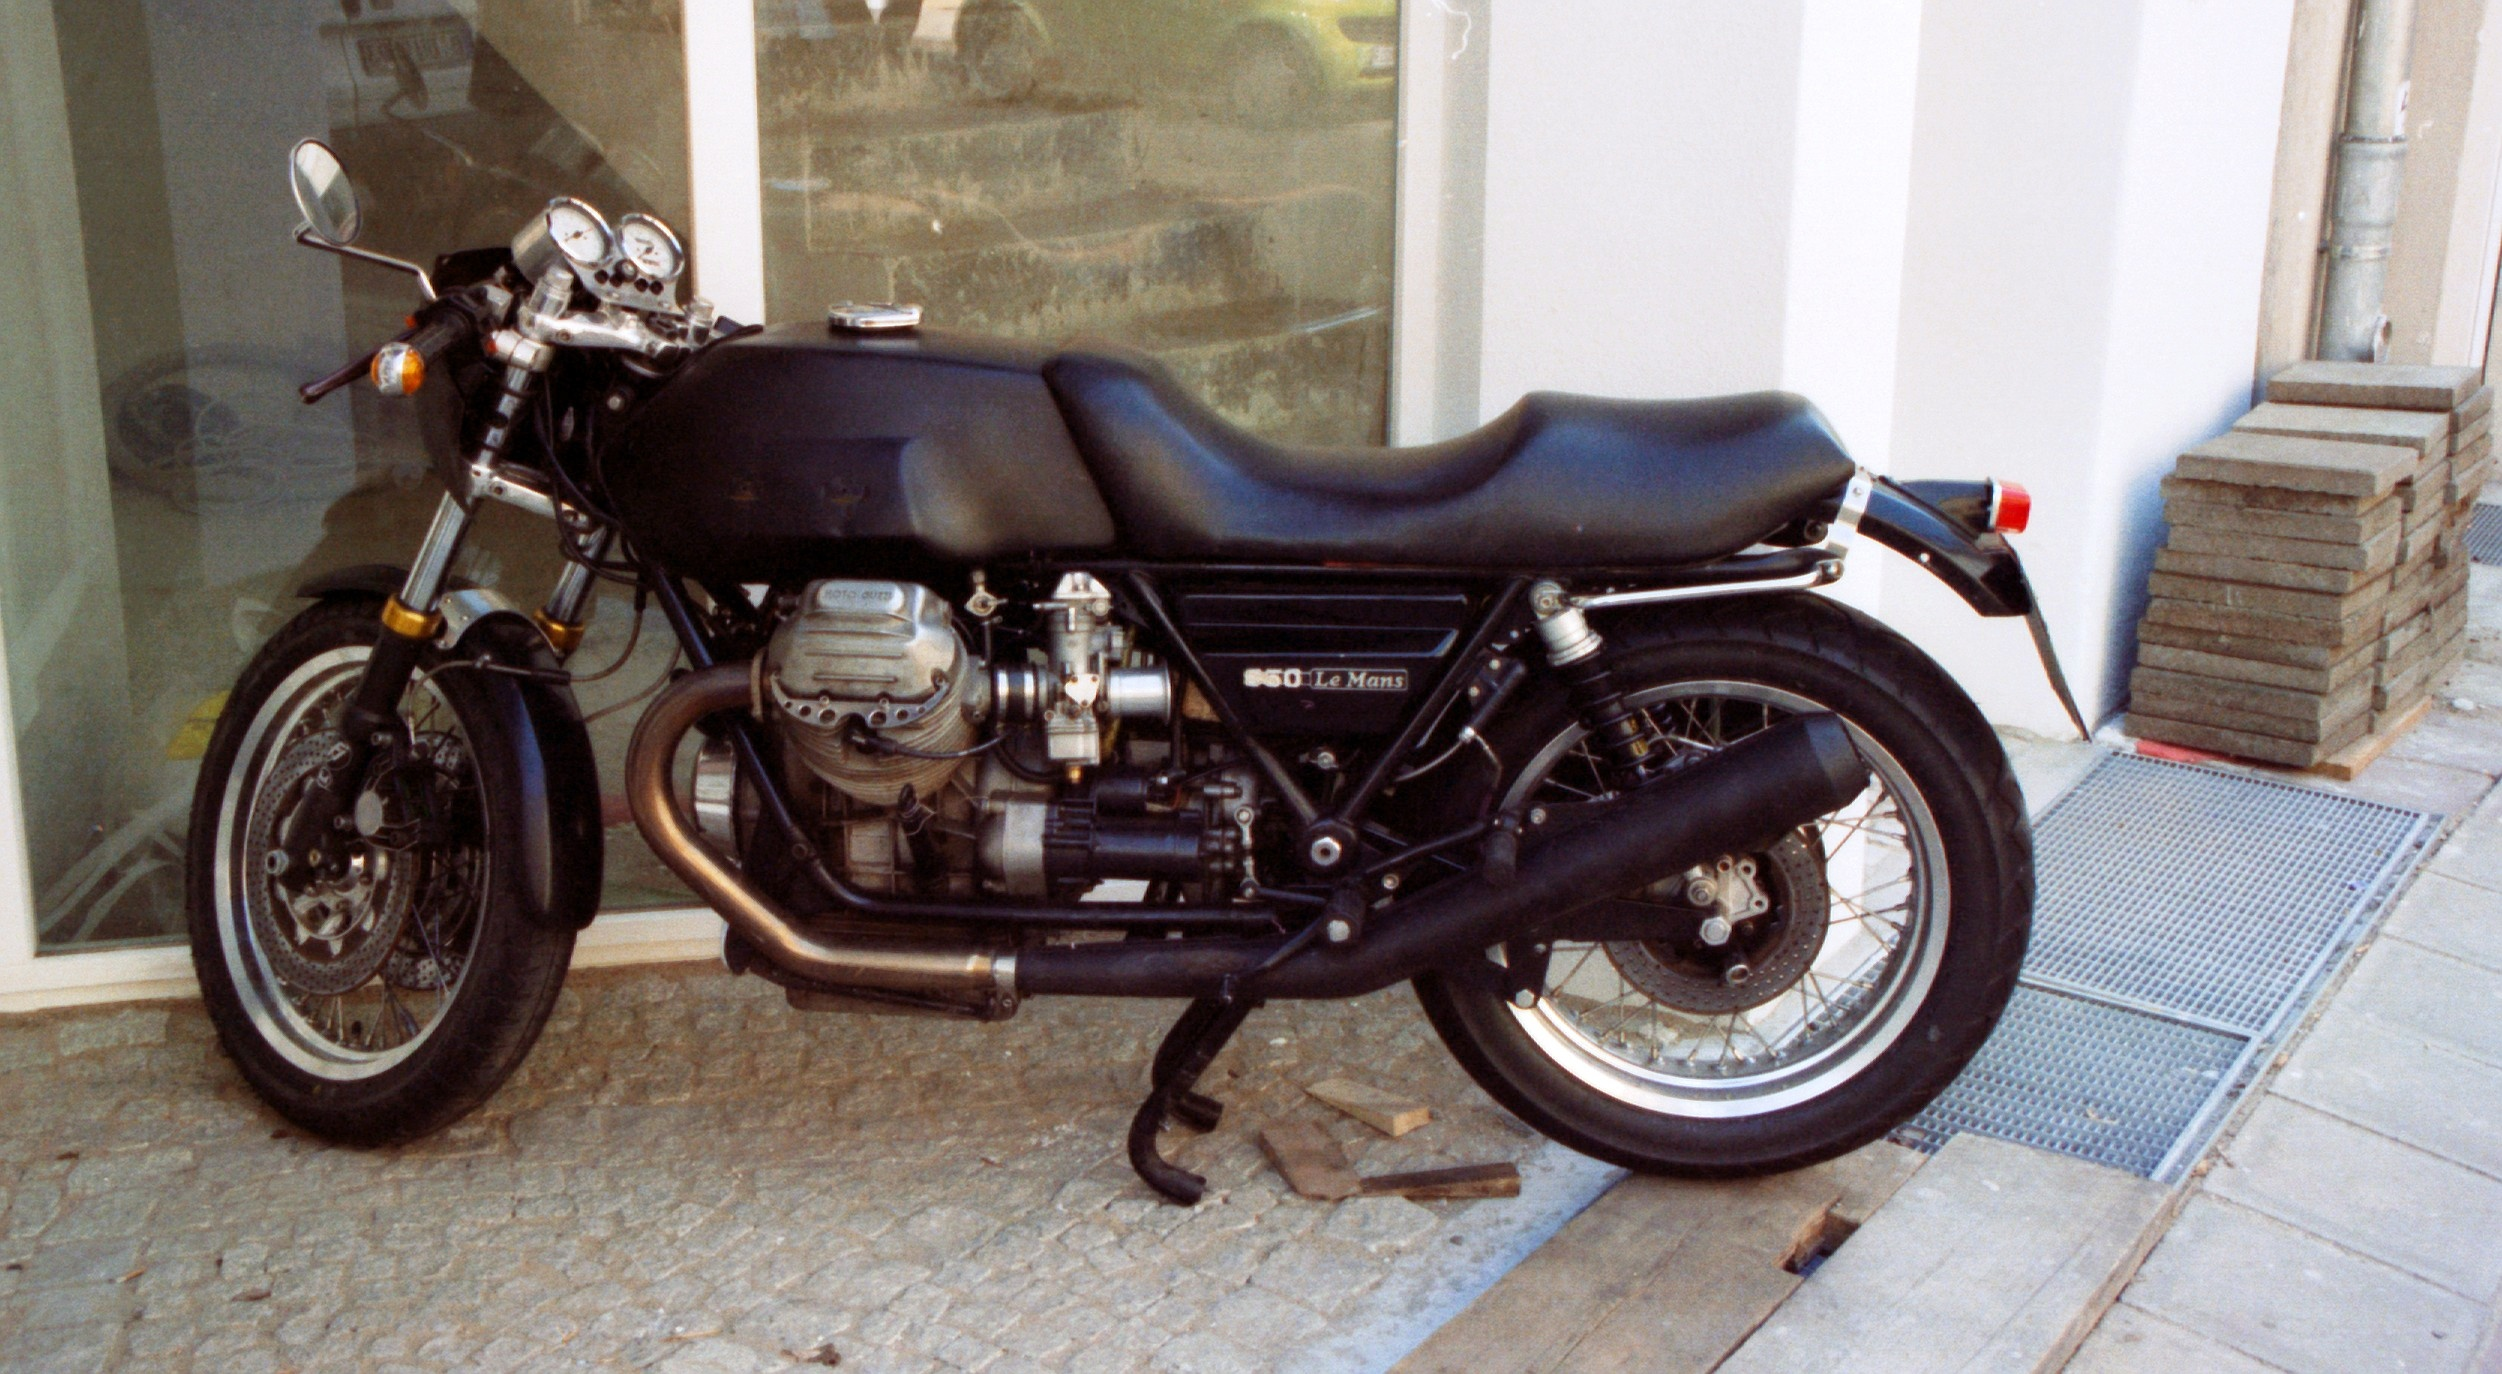 Moto Guzzi V65 Lario 1986 wallpapers #161073